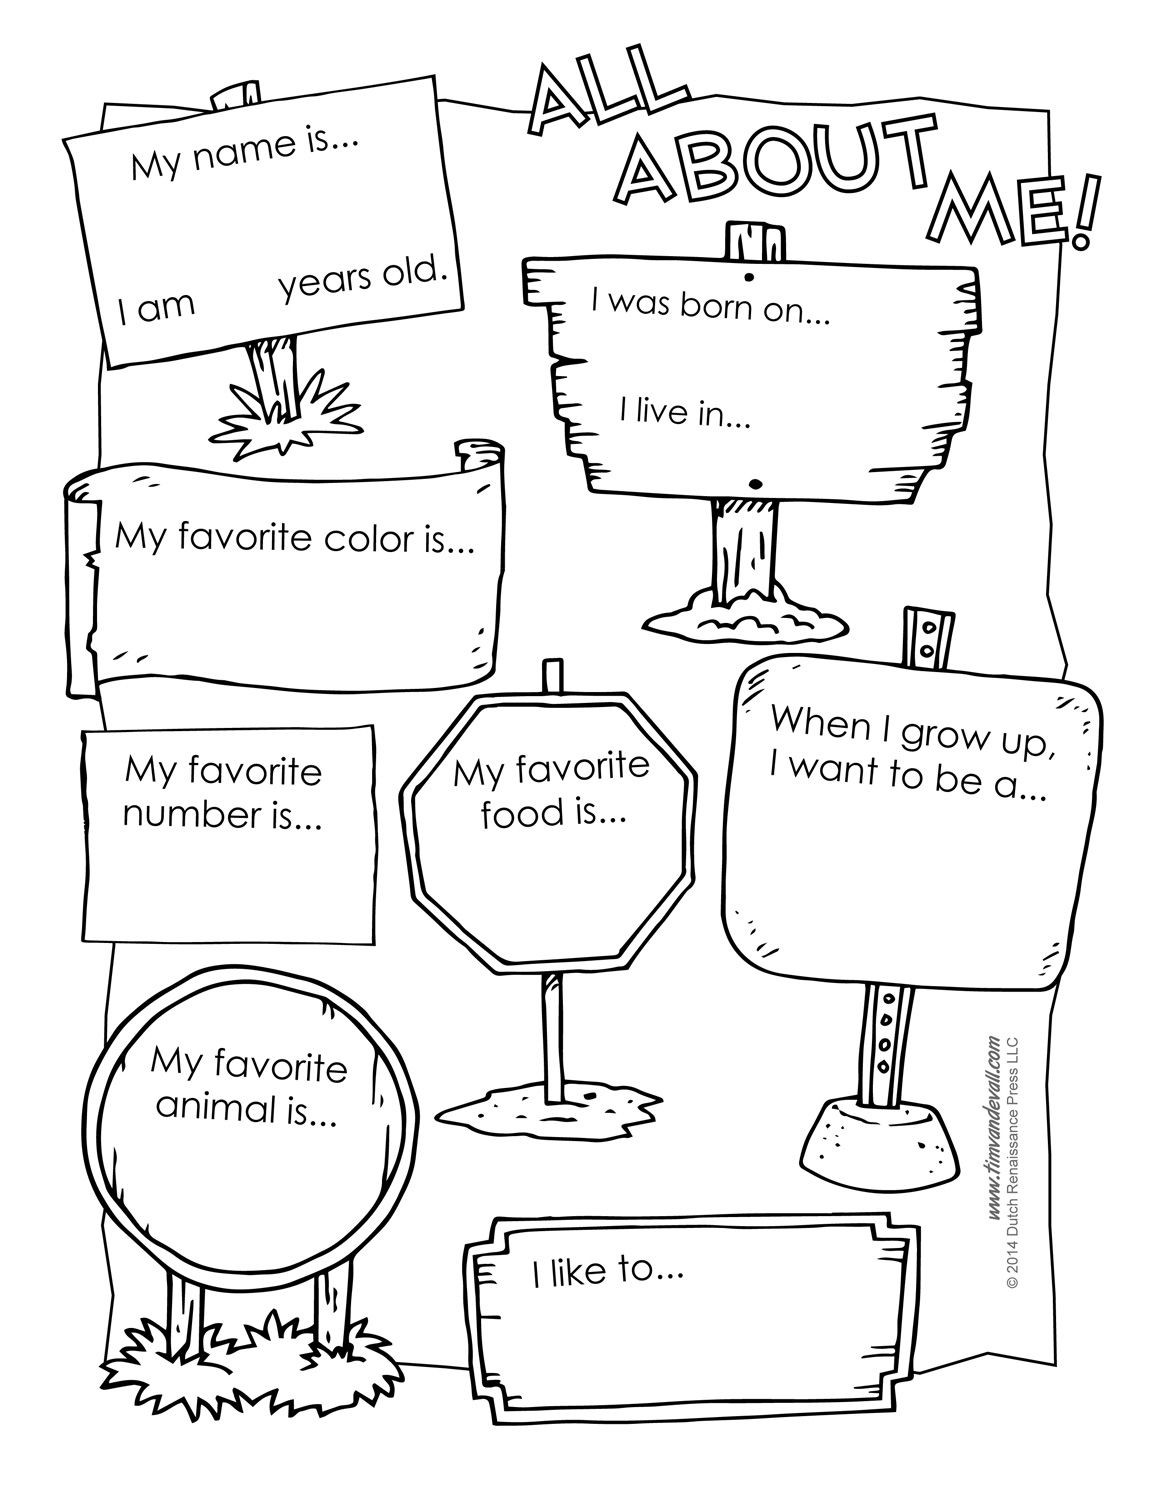 All About Me Worksheet Preschool All About Me Preschool Template